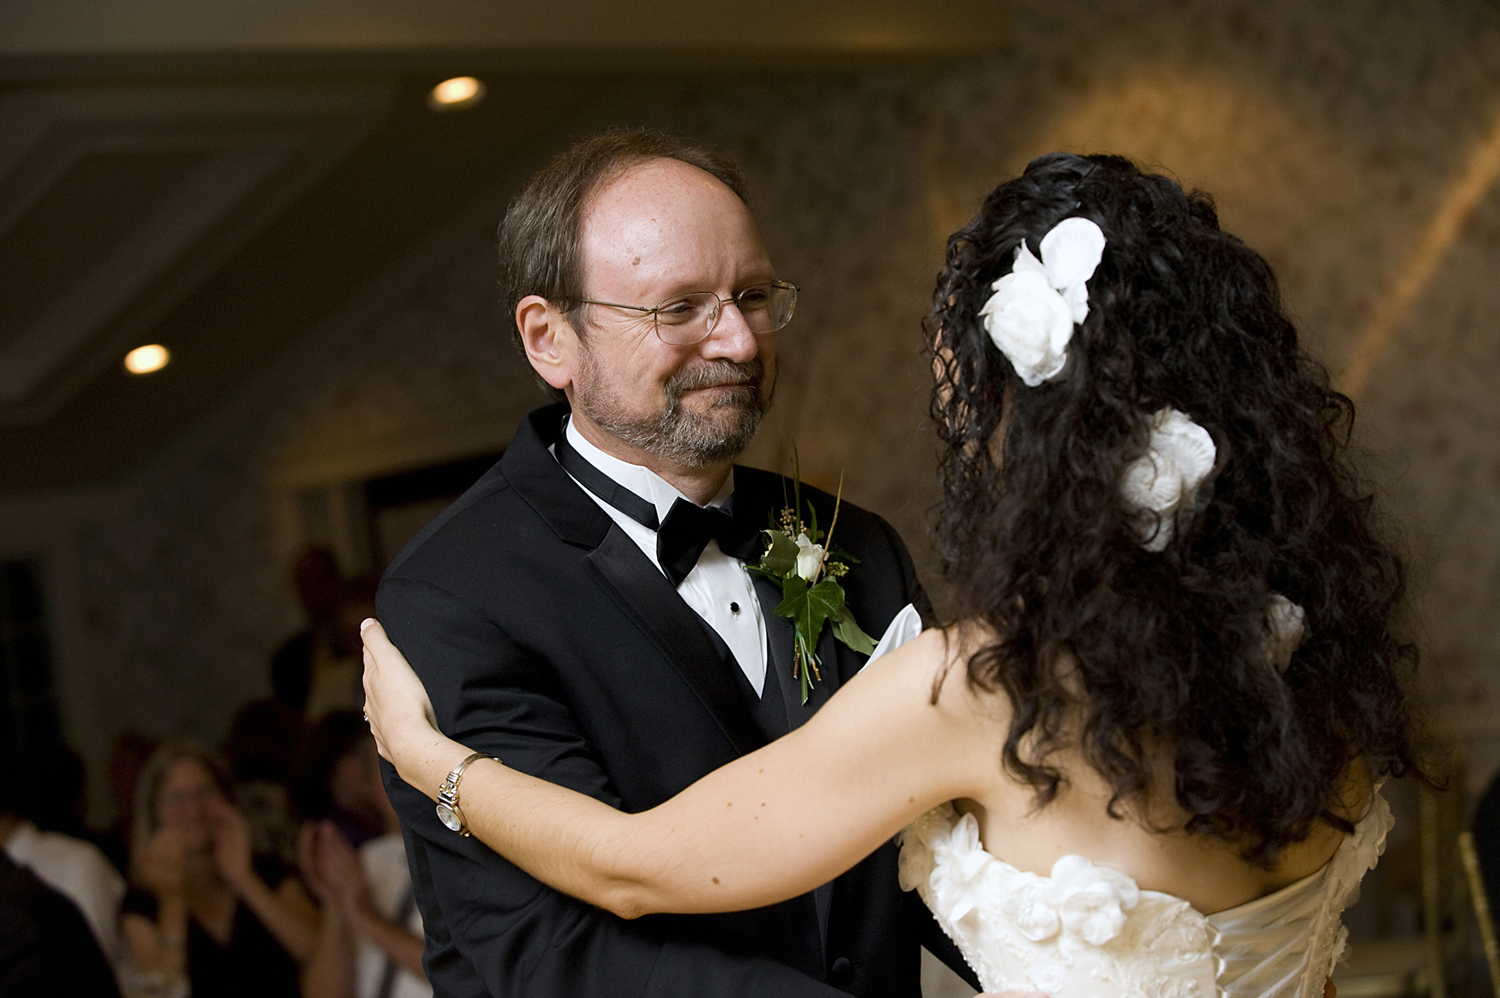 father daughter dance at wedding at Mansion at Bretton Woods. NJ  wedding photographers